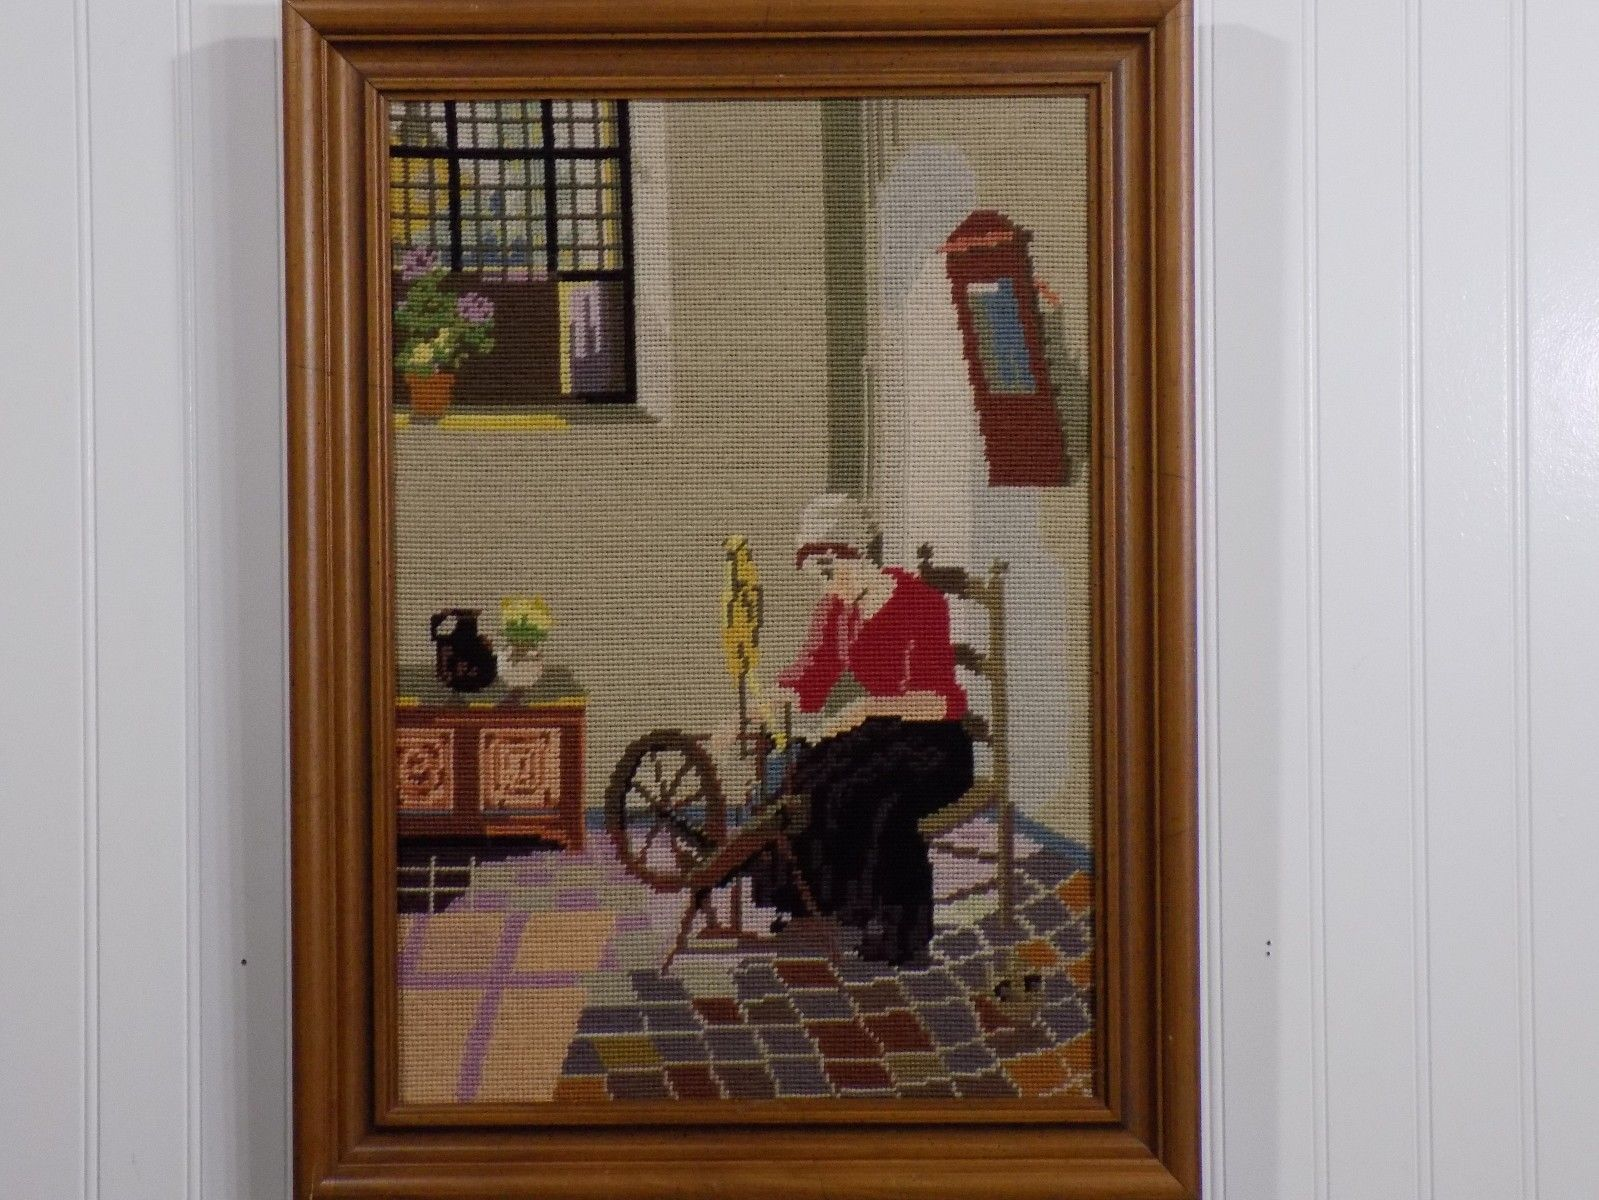 Very Nice Vintage Framed Needlepoint Art Canvas Woman at Spinning Wheel